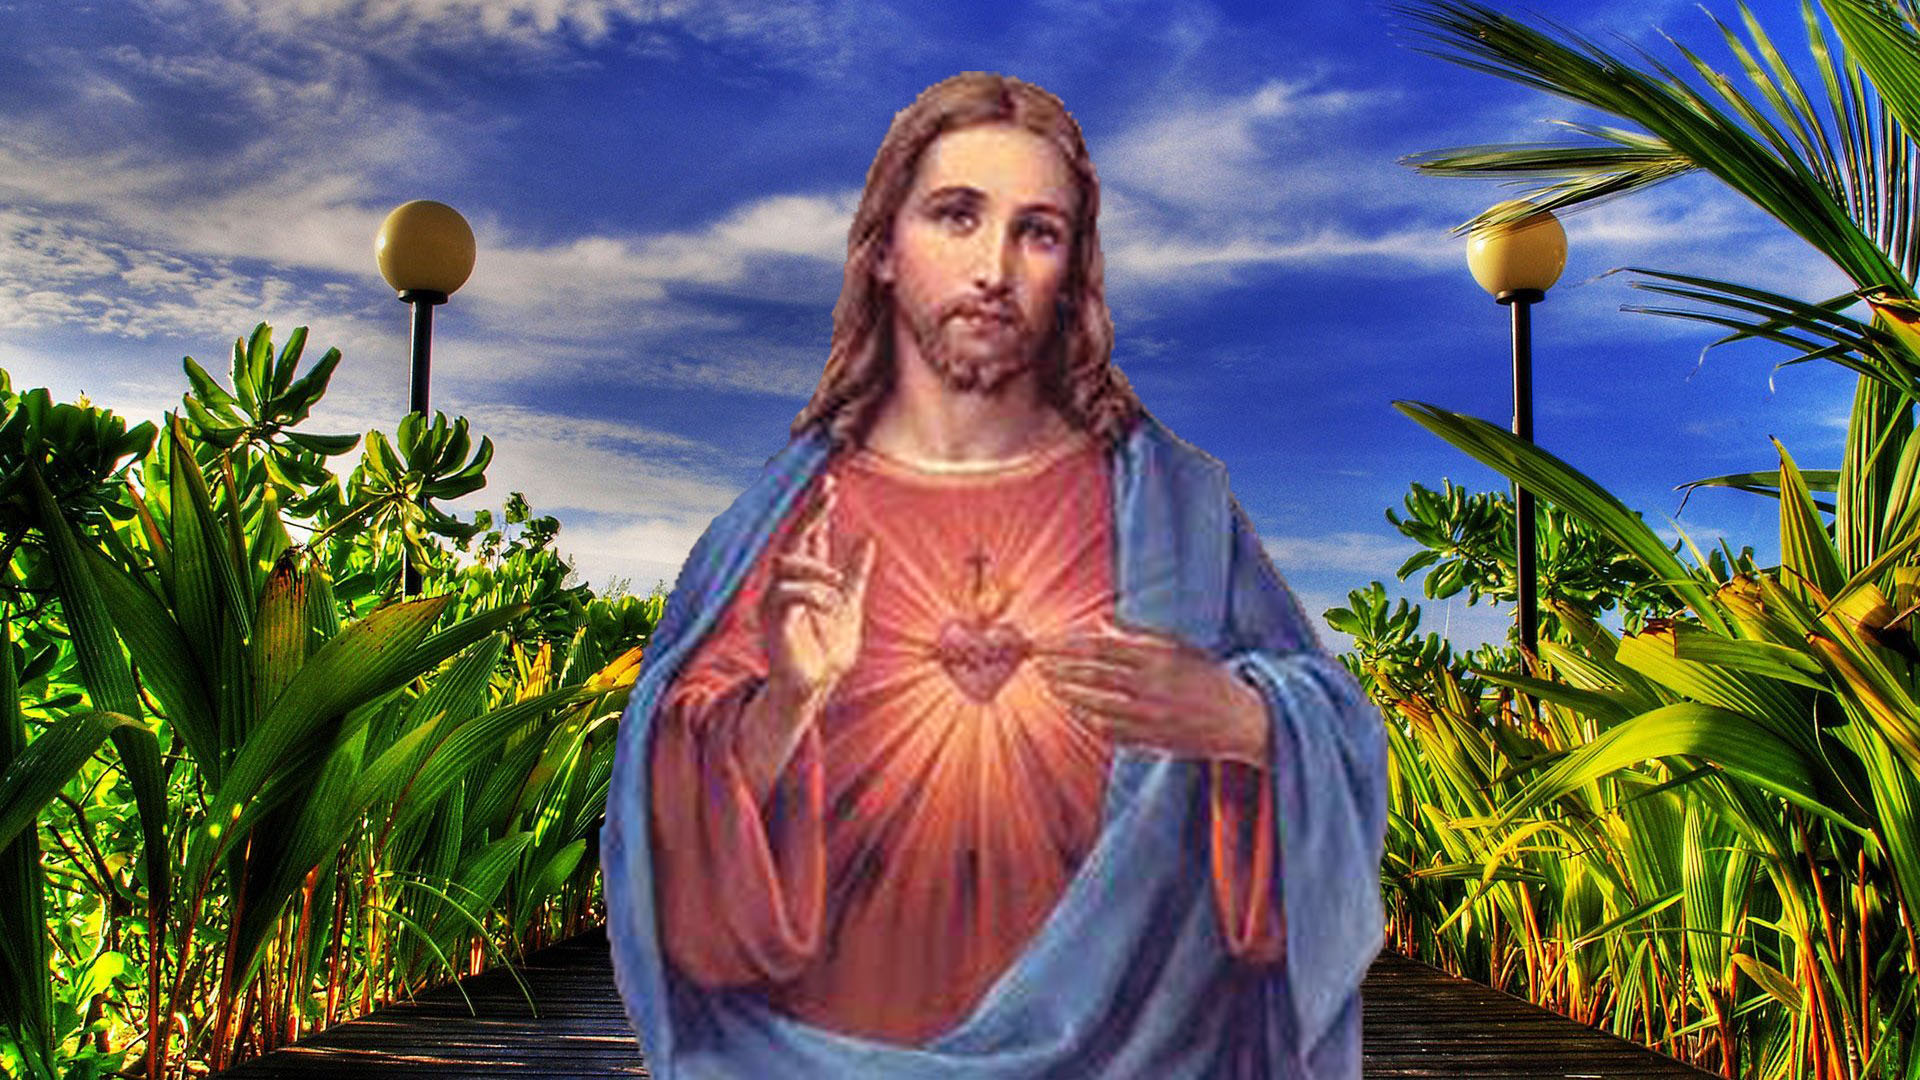 Free Jesus Wallpapers